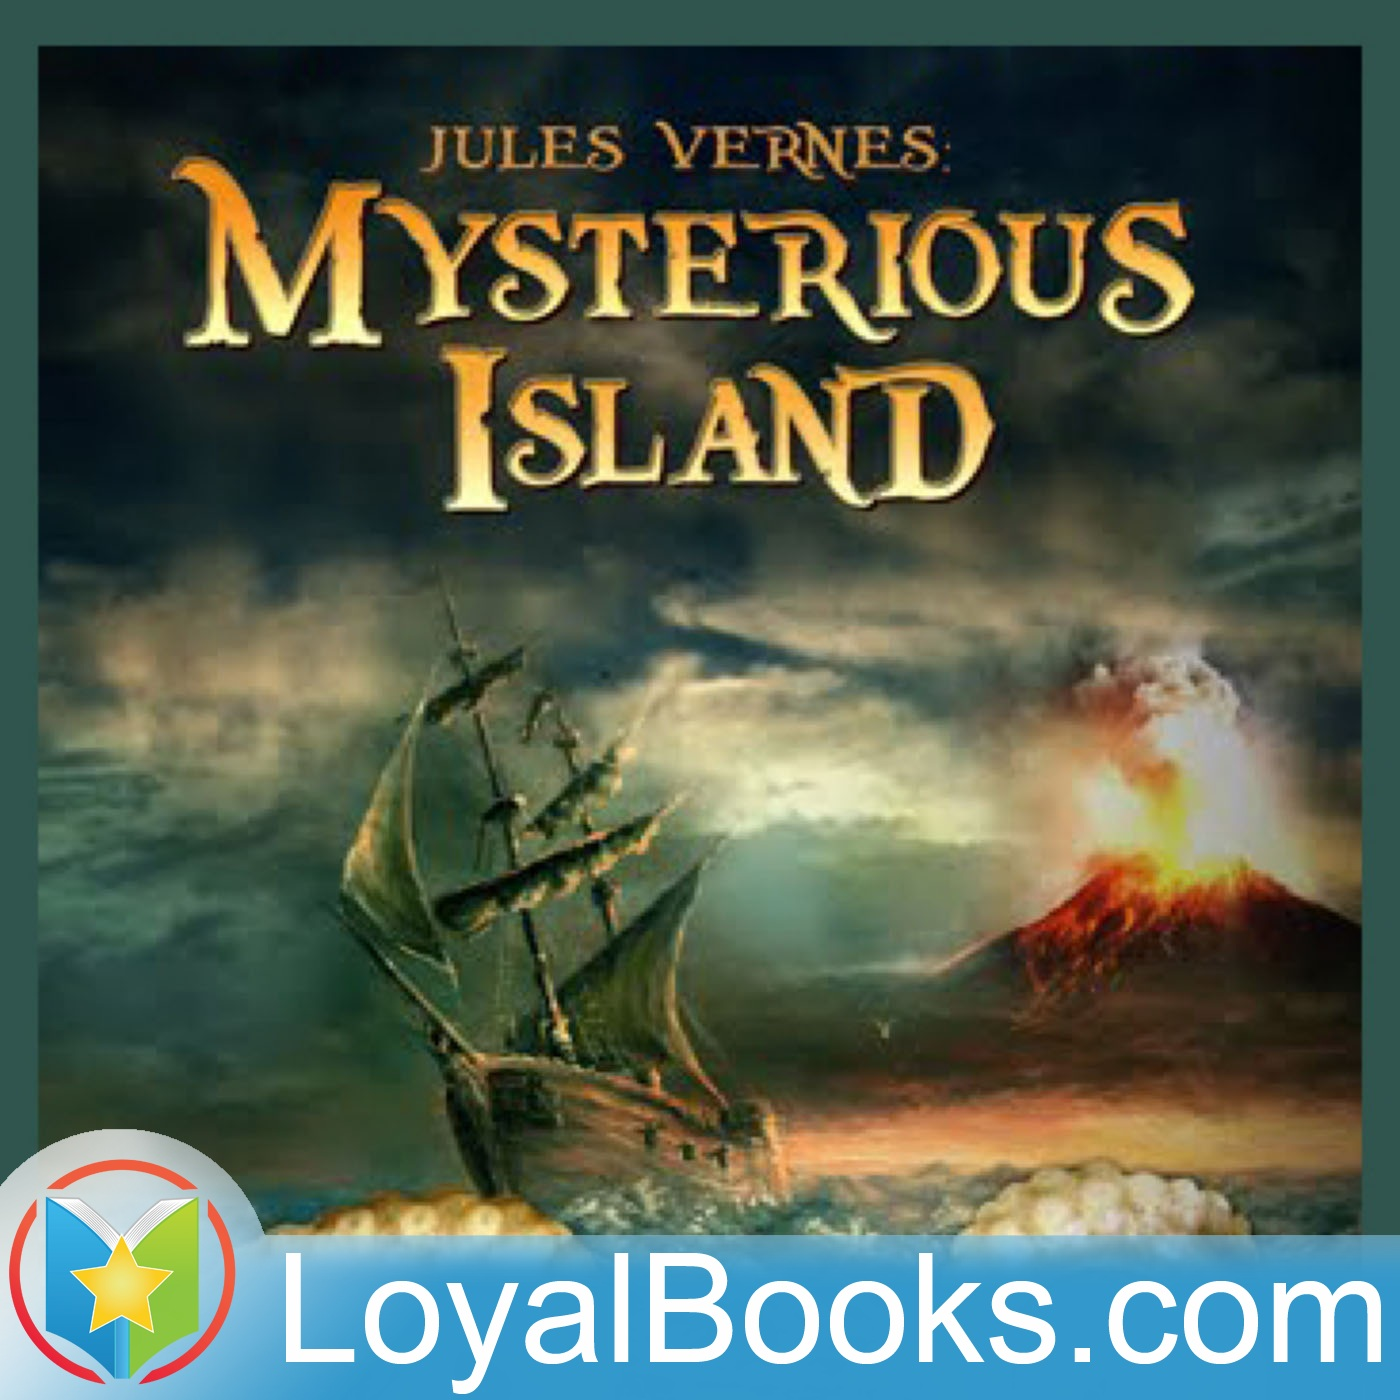 <![CDATA[The Mysterious Island by Jules Verne]]>